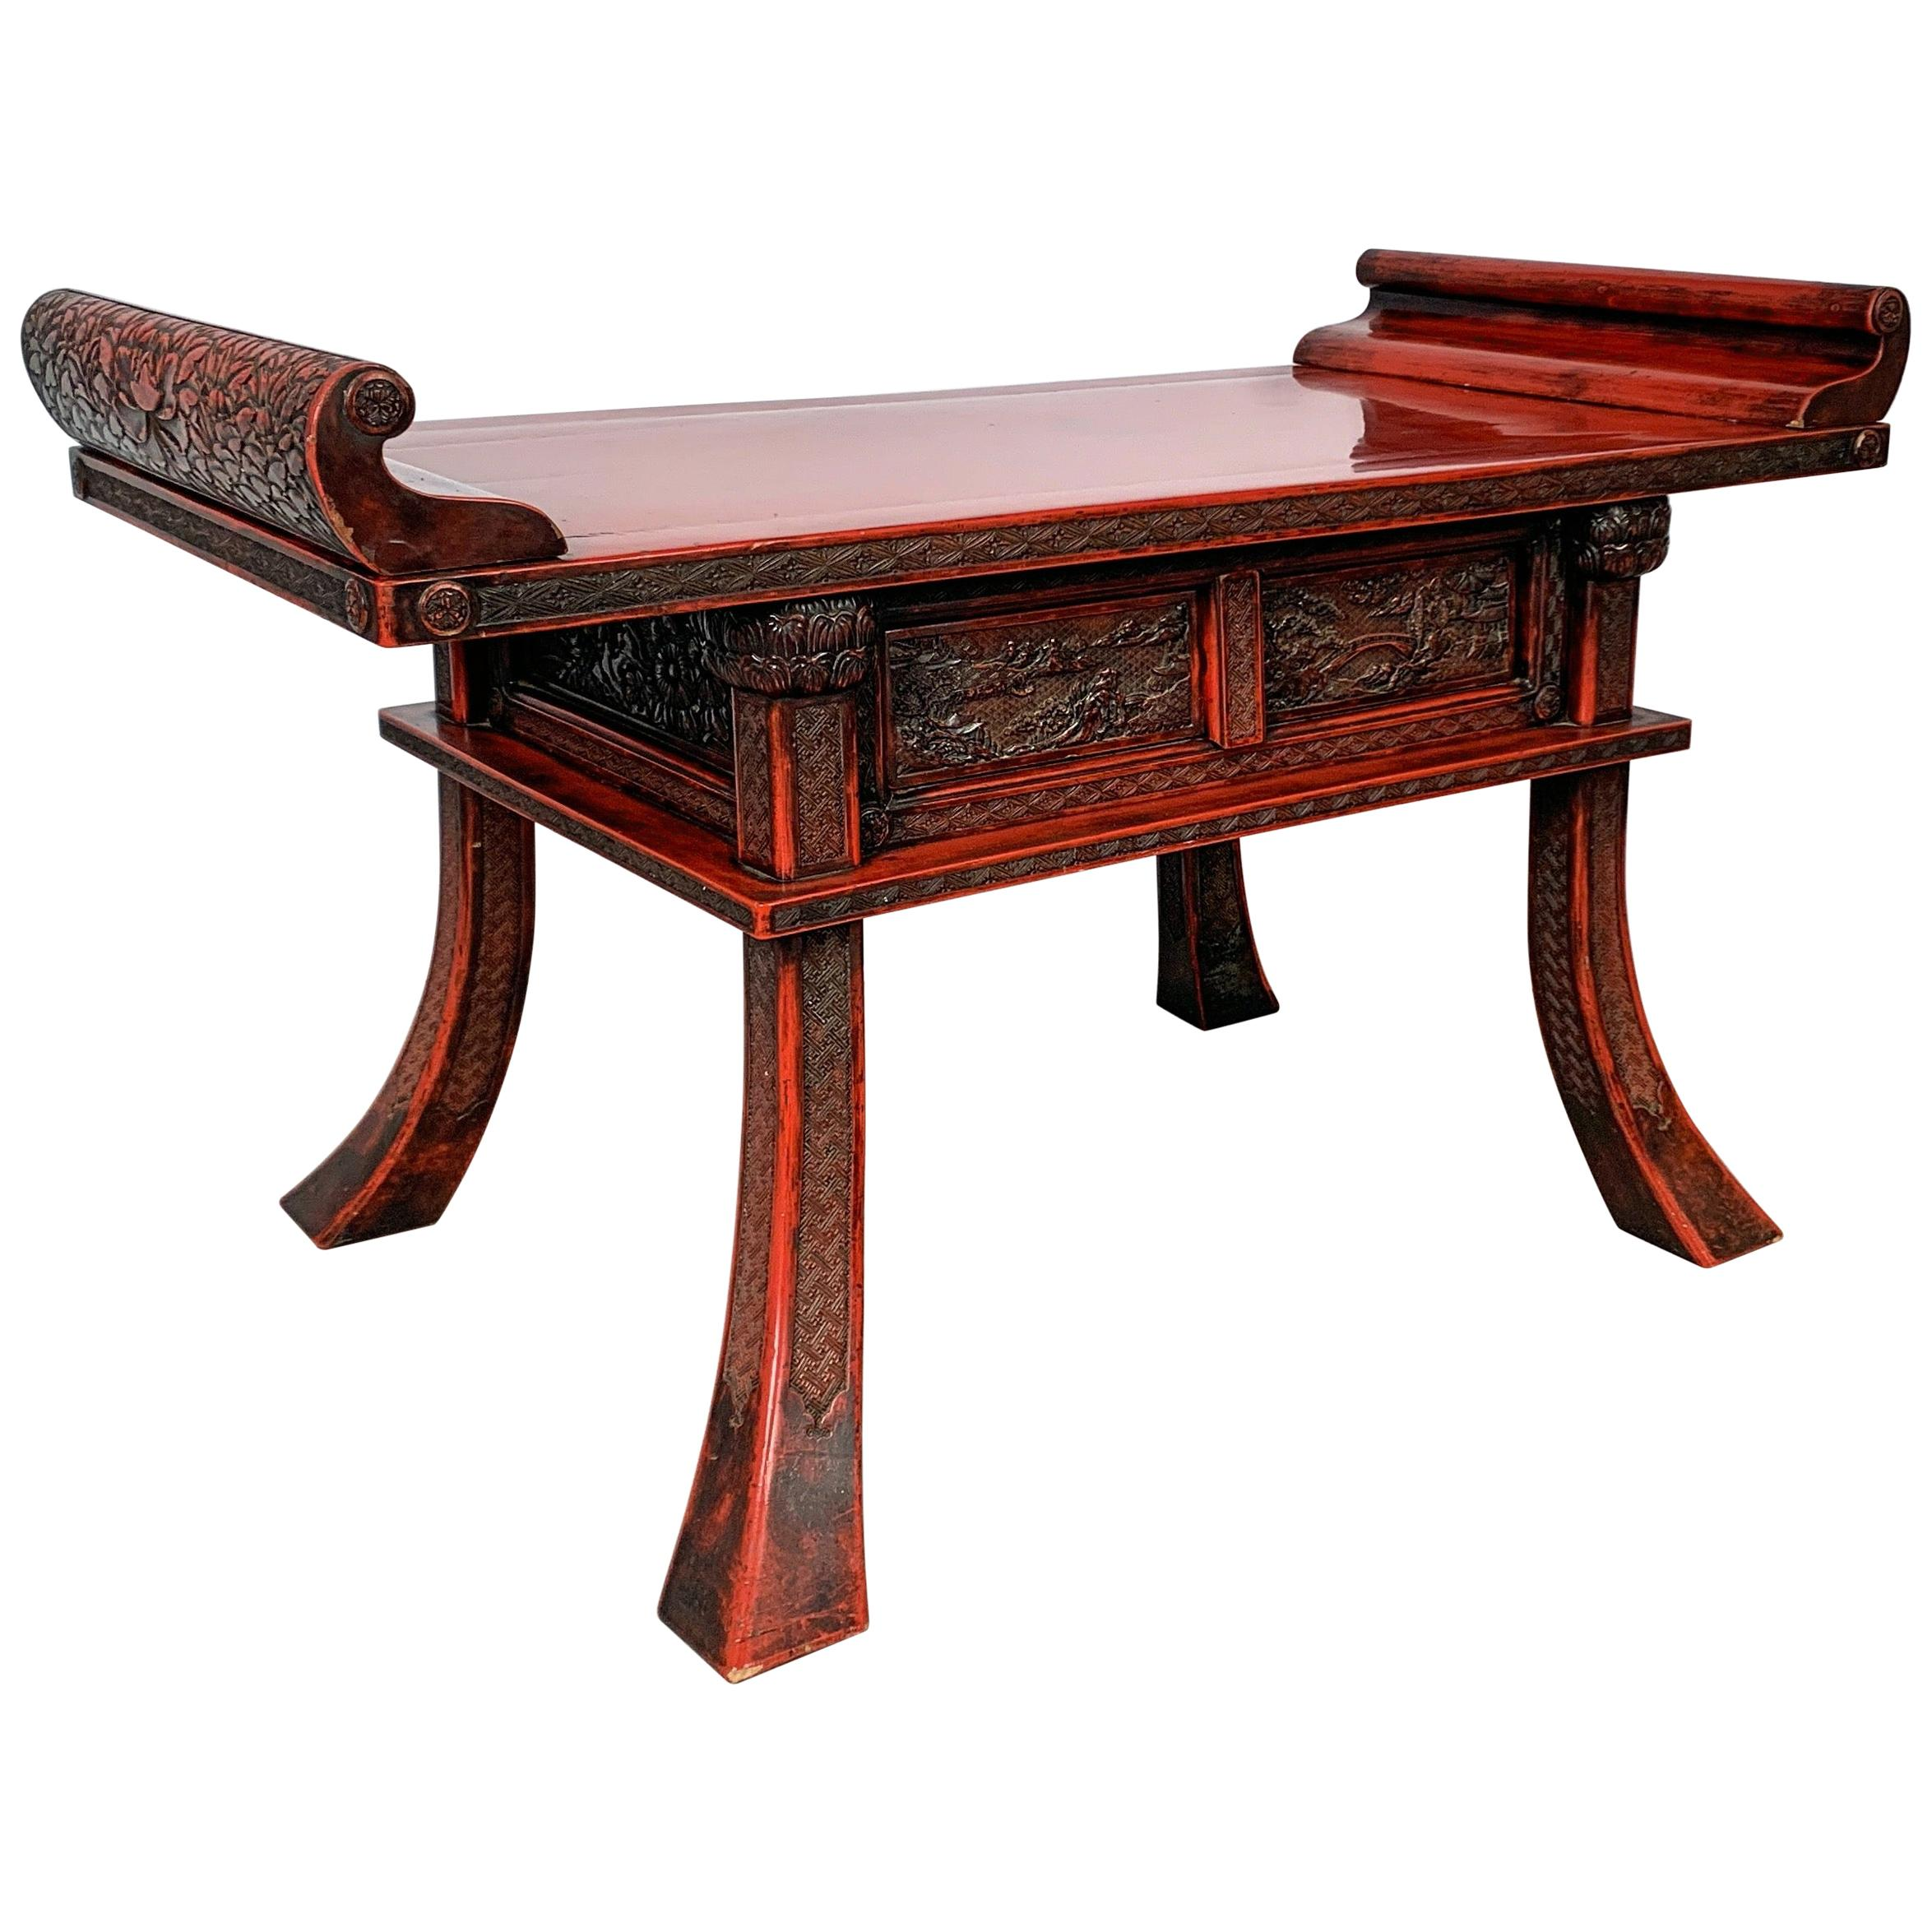 Japanese Carved and Red Lacquer Kamakura-Bori Altar Table, Mid-19th Century